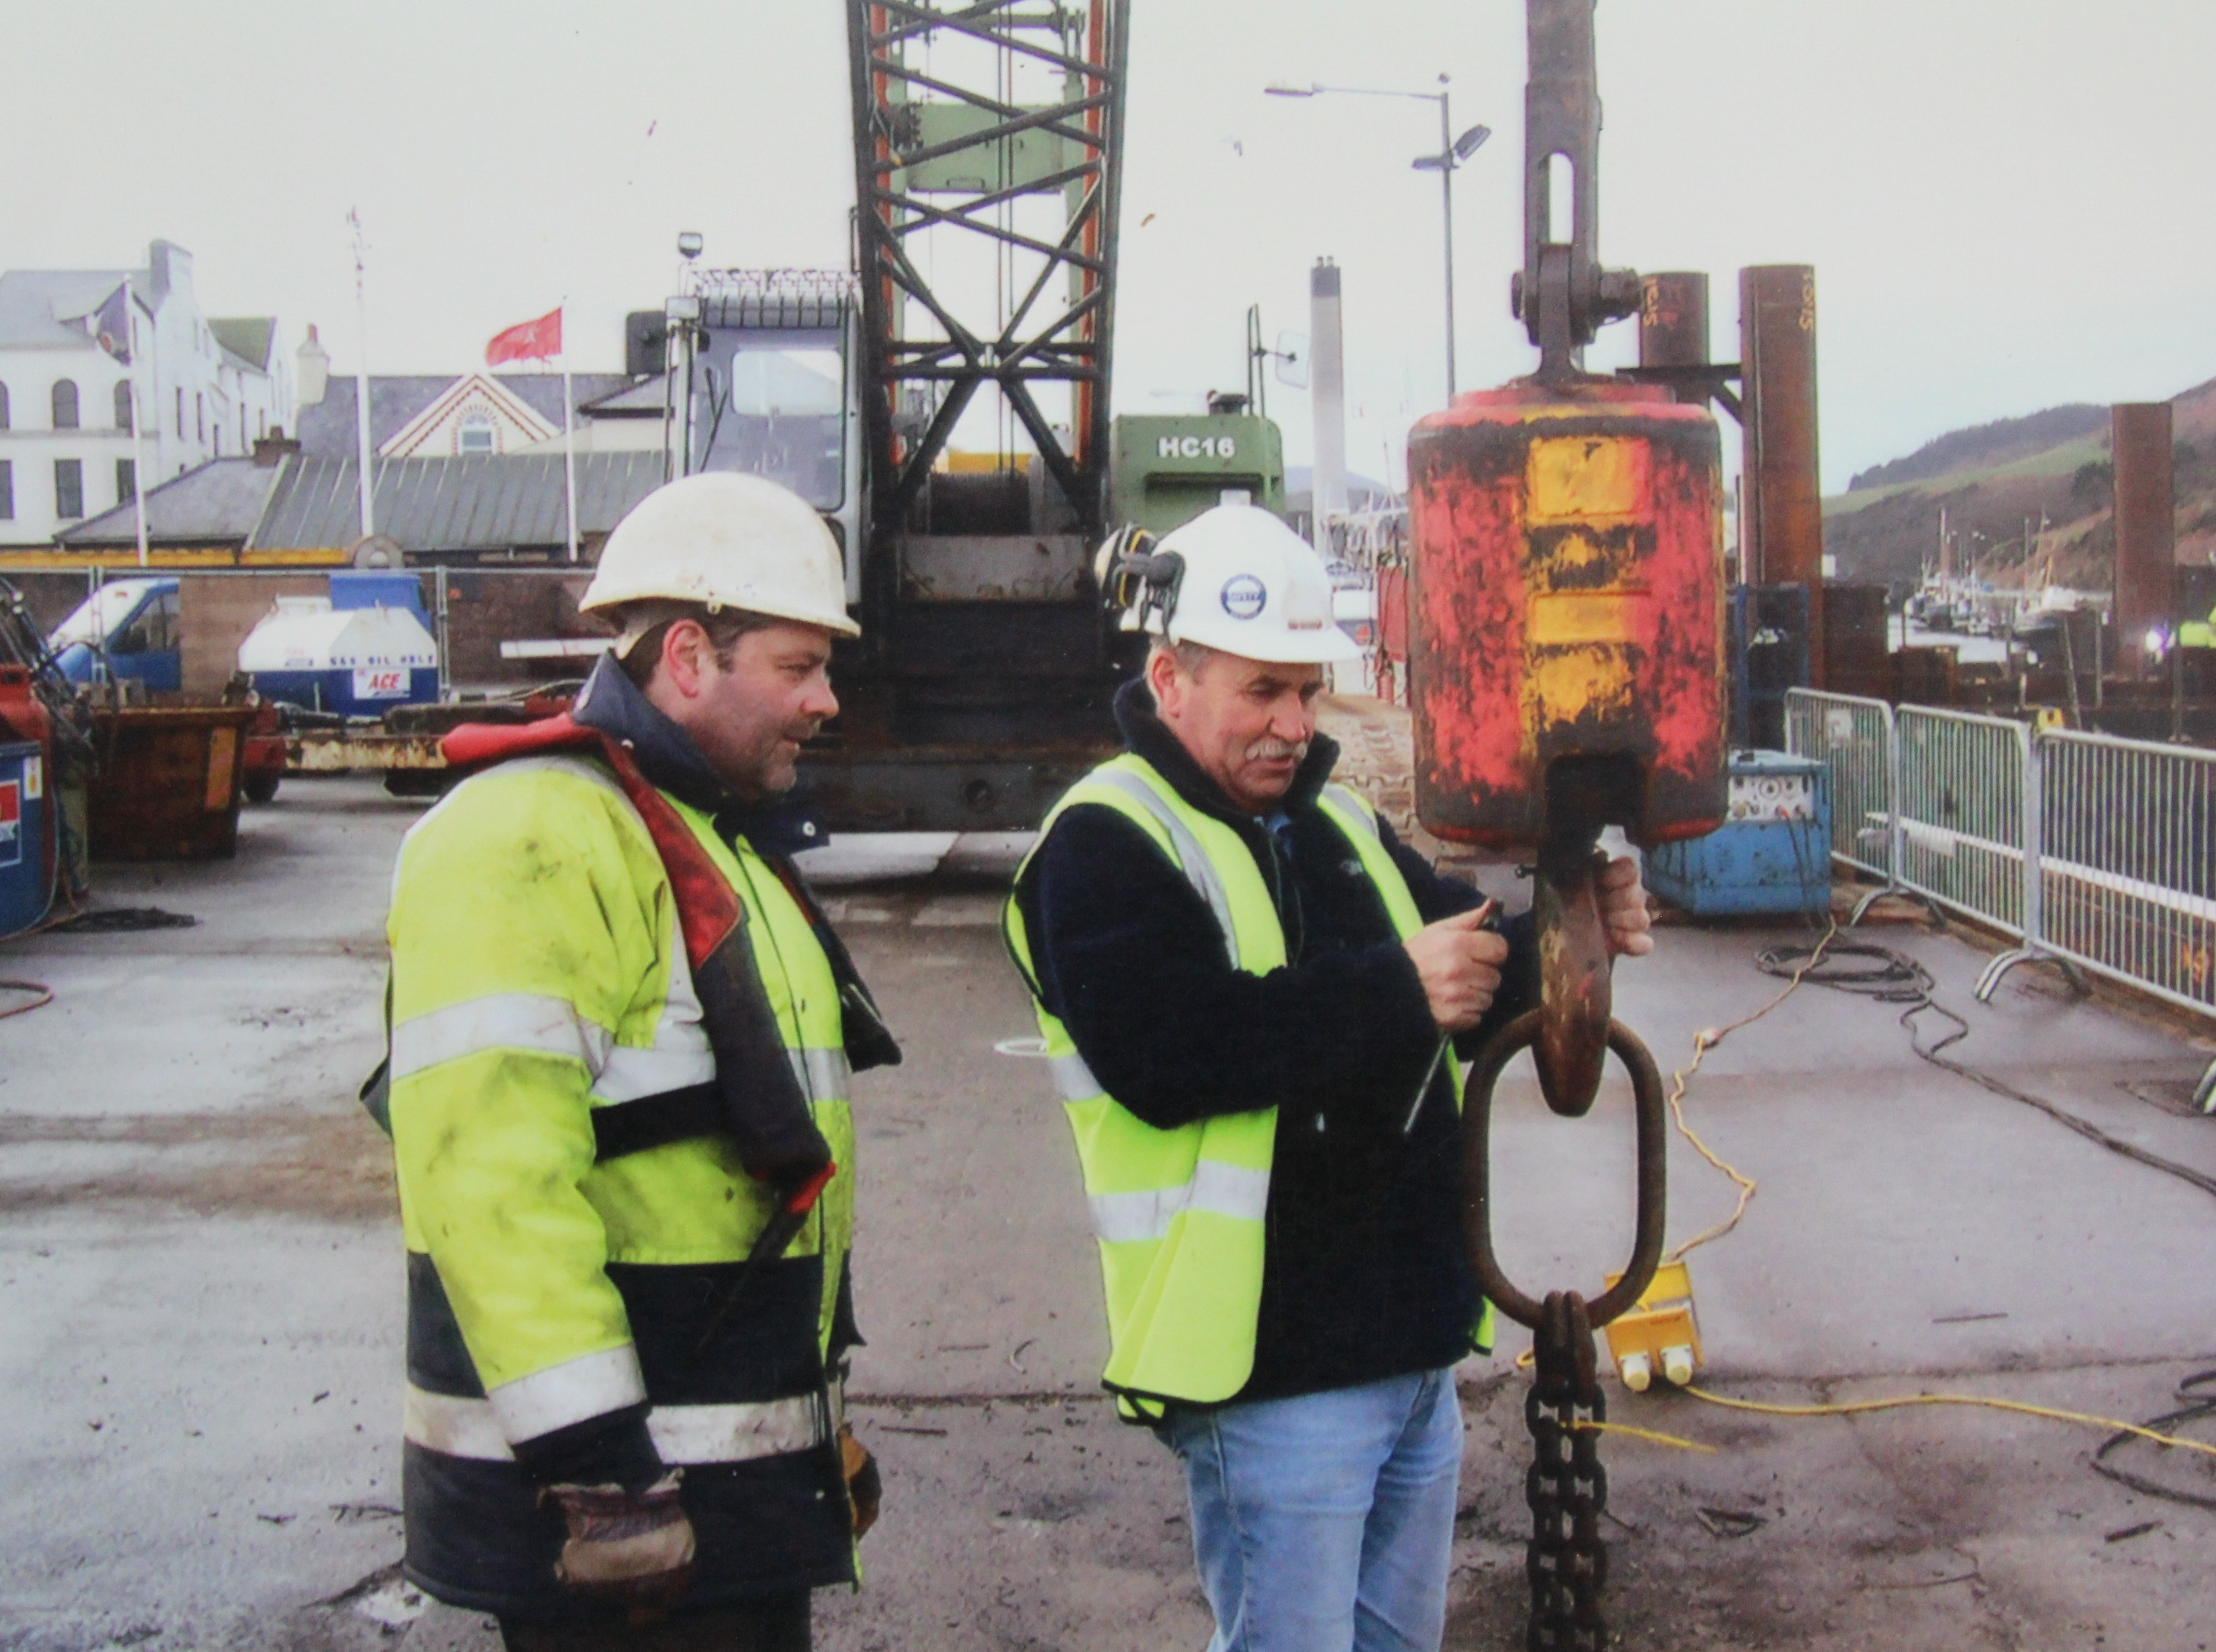 Gallery - Piling Personnel Ltd.Our Paul Newman and our very dear friend, Colin Fitzgerald. Taken in the Isle of Man, what year?